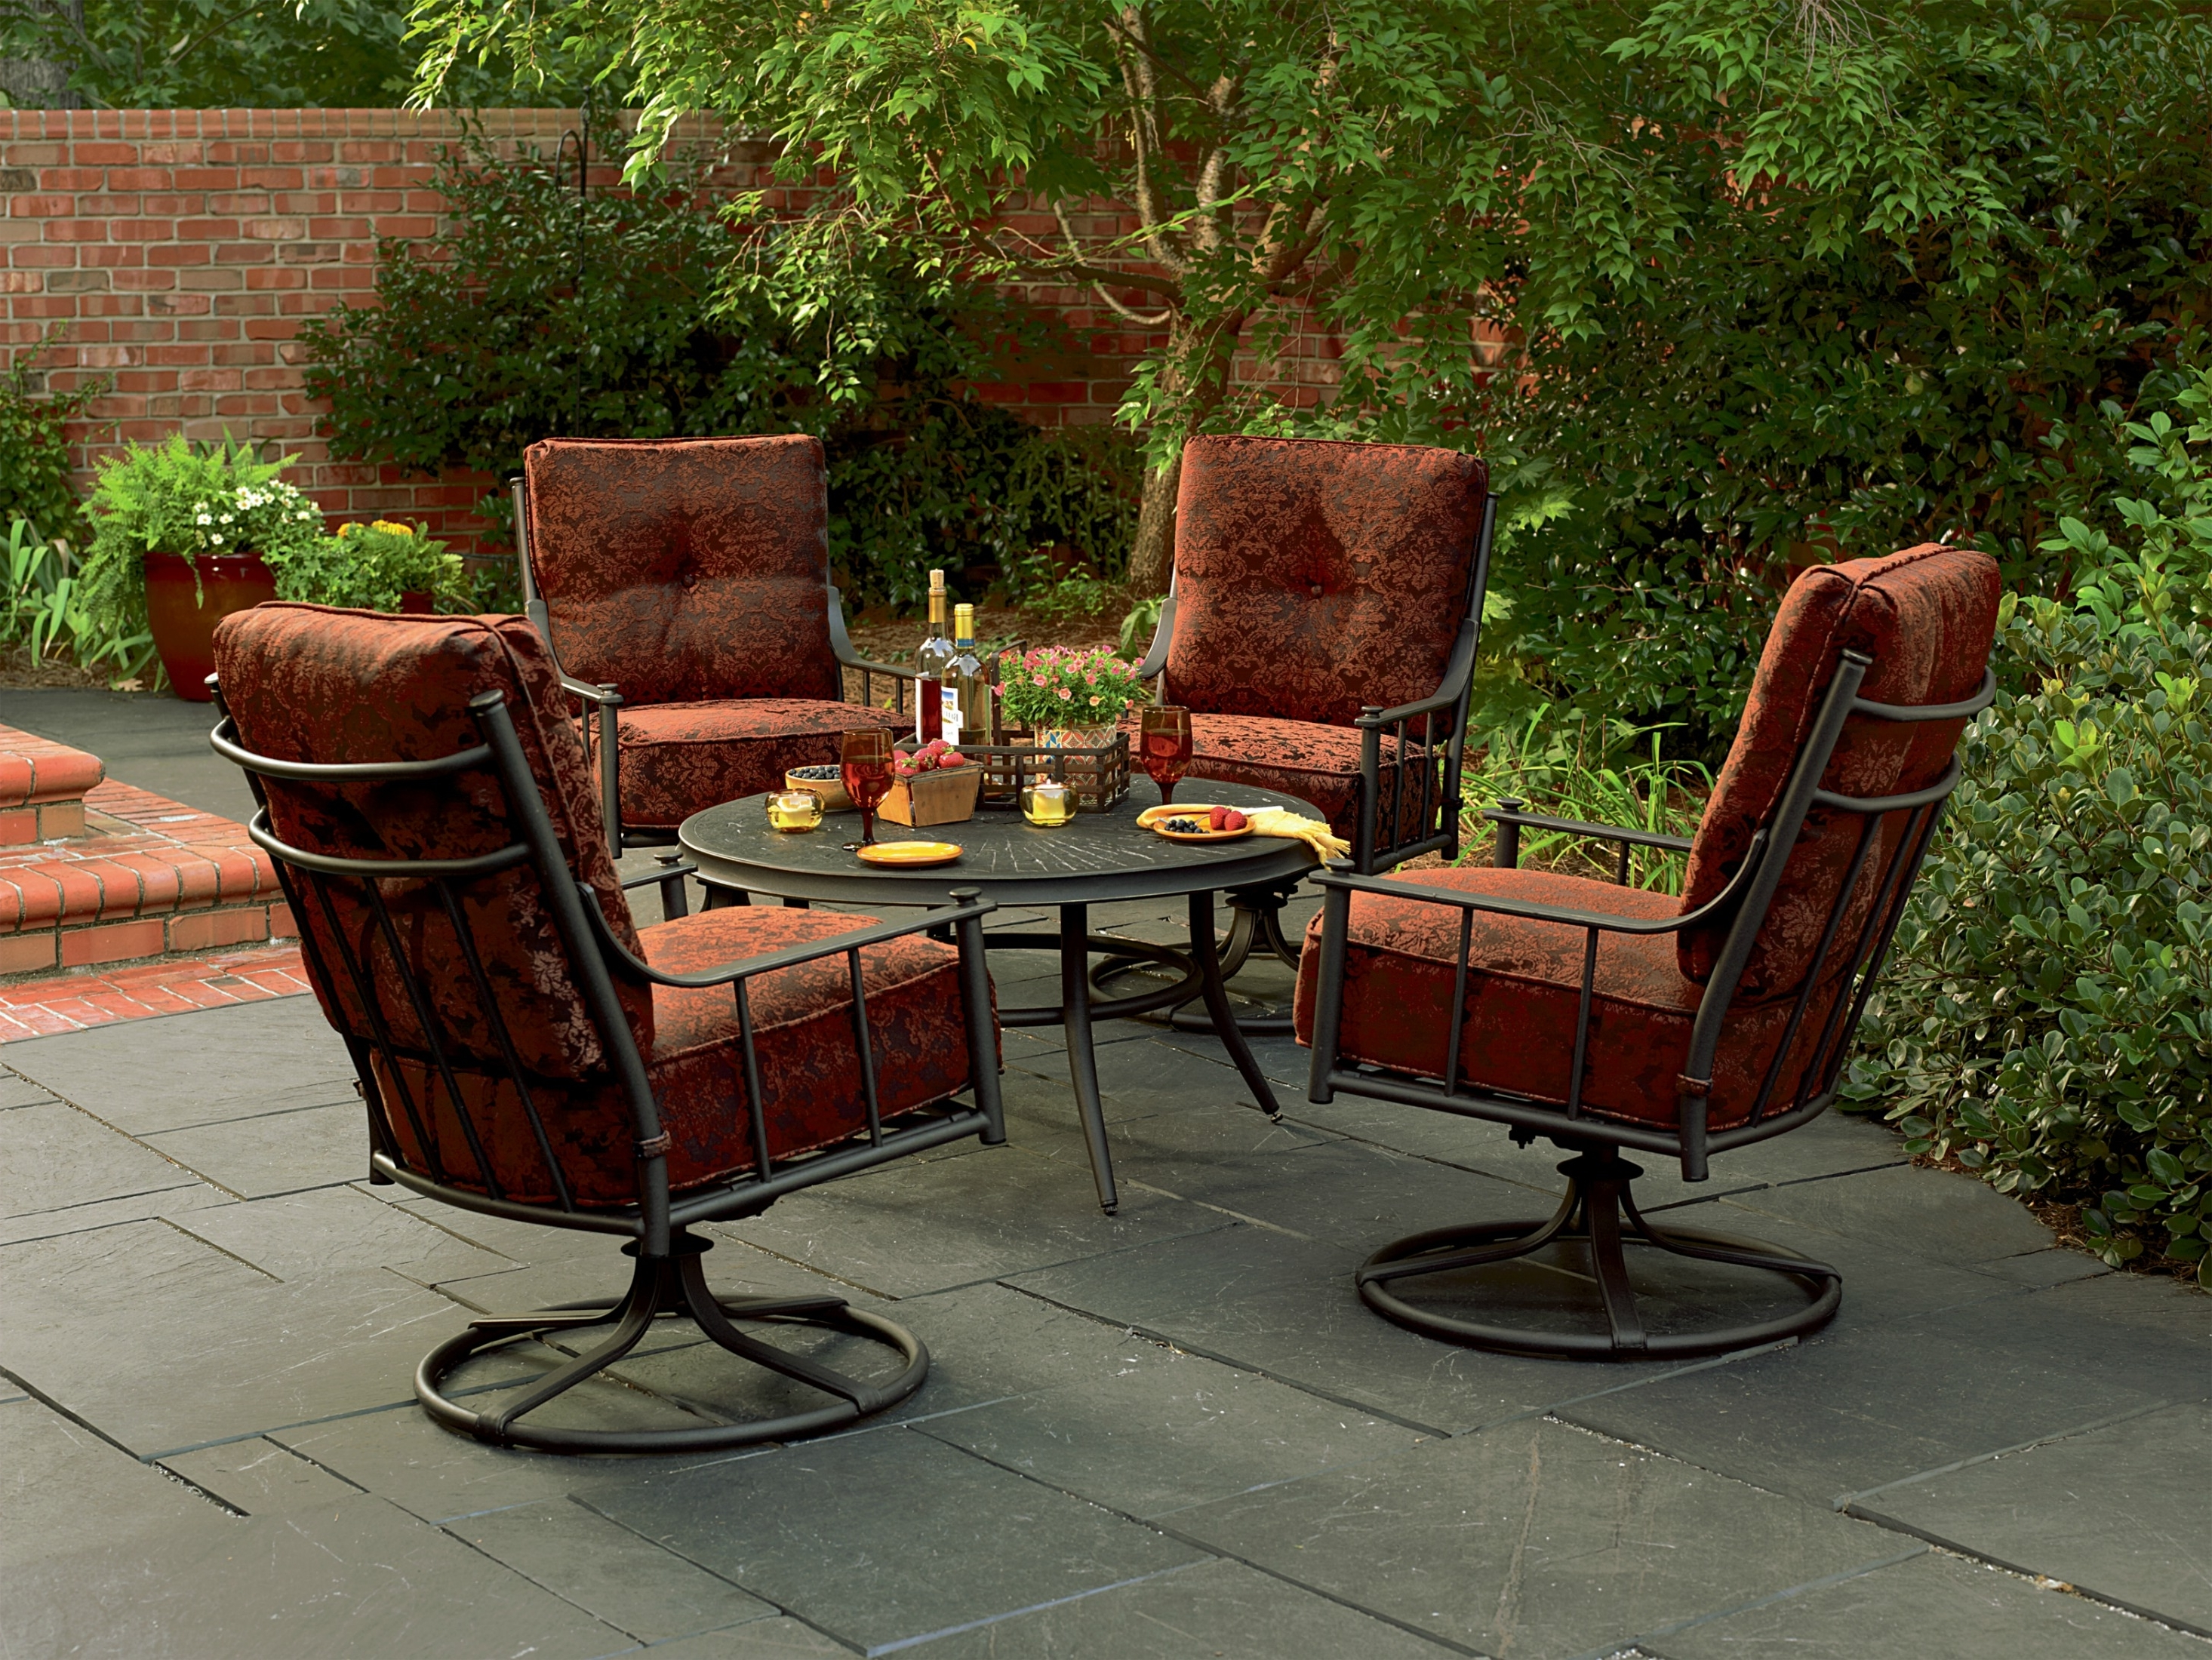 Anadolukardiyolderg Pertaining To Most Popular Patio Conversation Sets With Swivel Chairs (View 2 of 15)